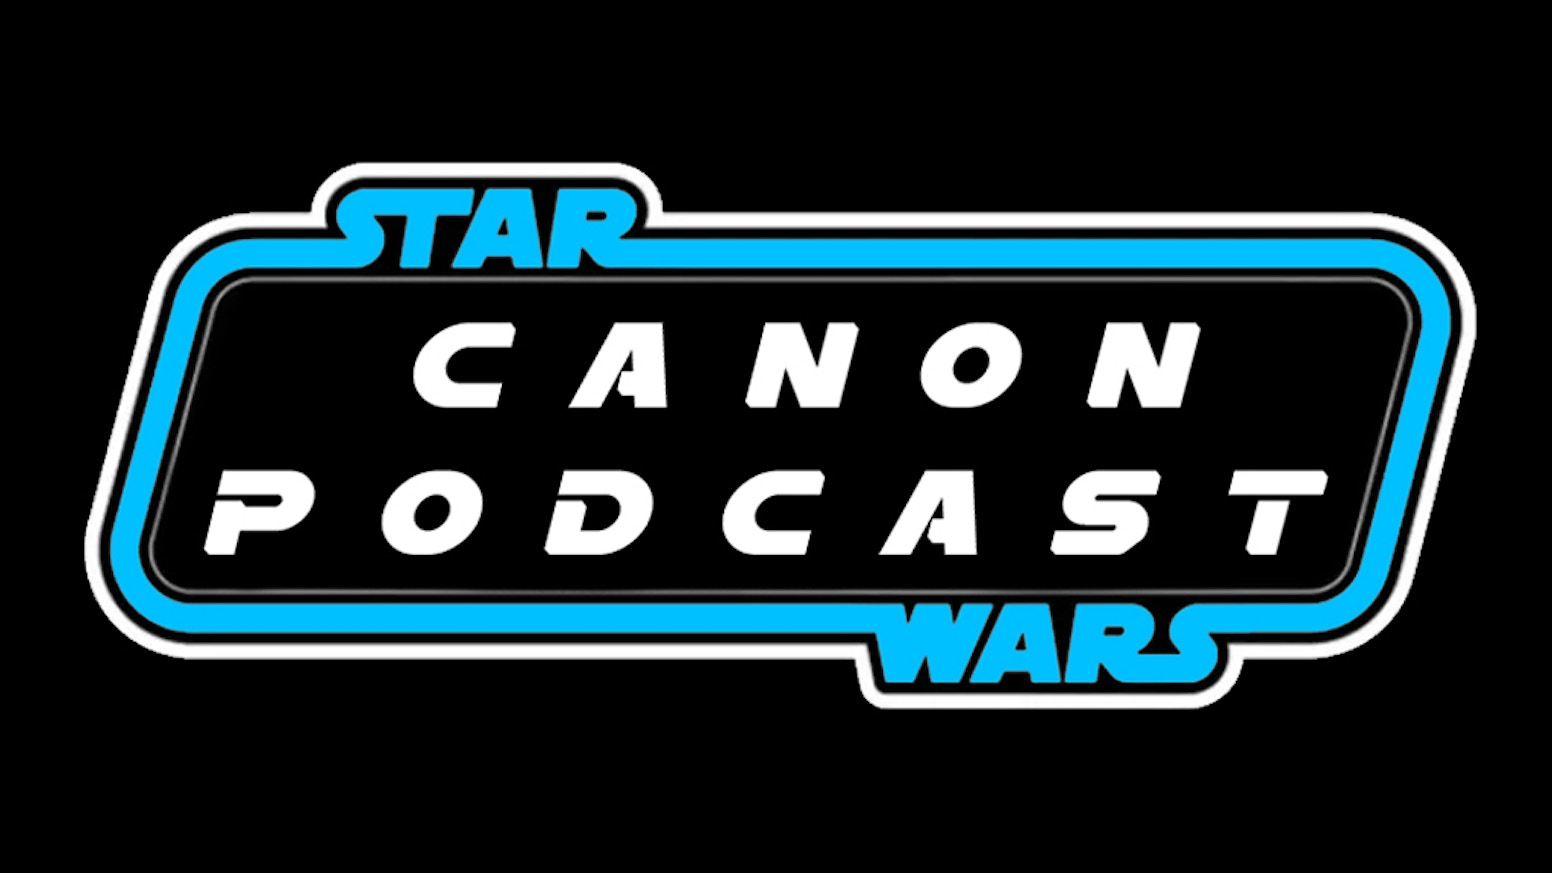 Star Wars Canon Podcast Mobile App